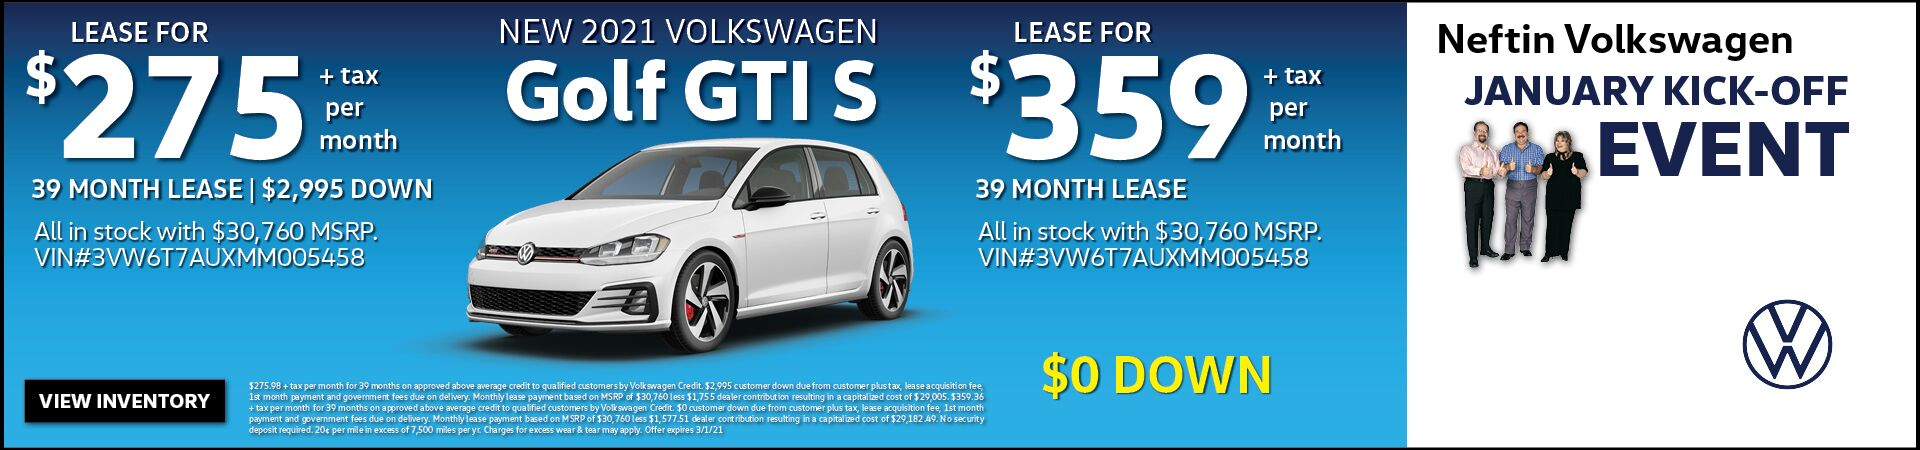 January '21 Golf GTI Lease Offer